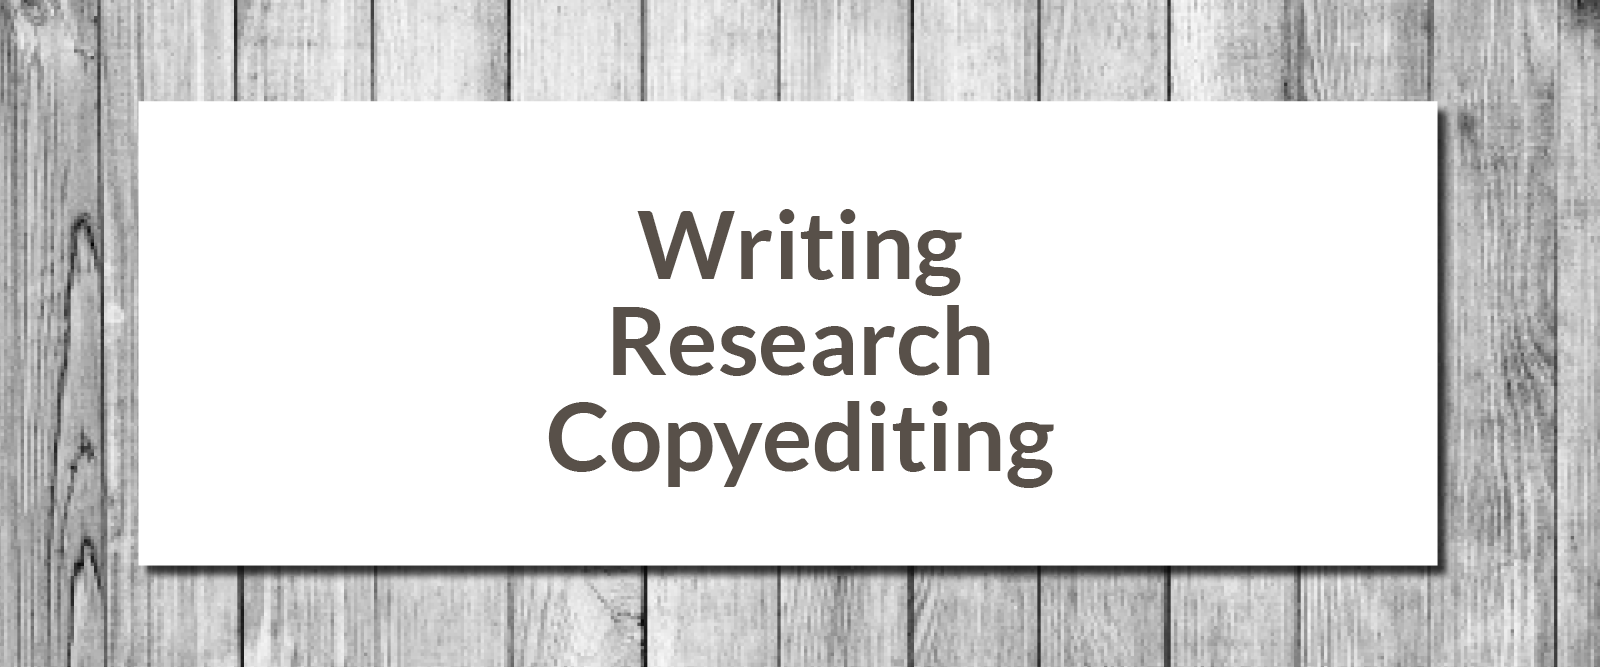 Writing, Research, Copyediting